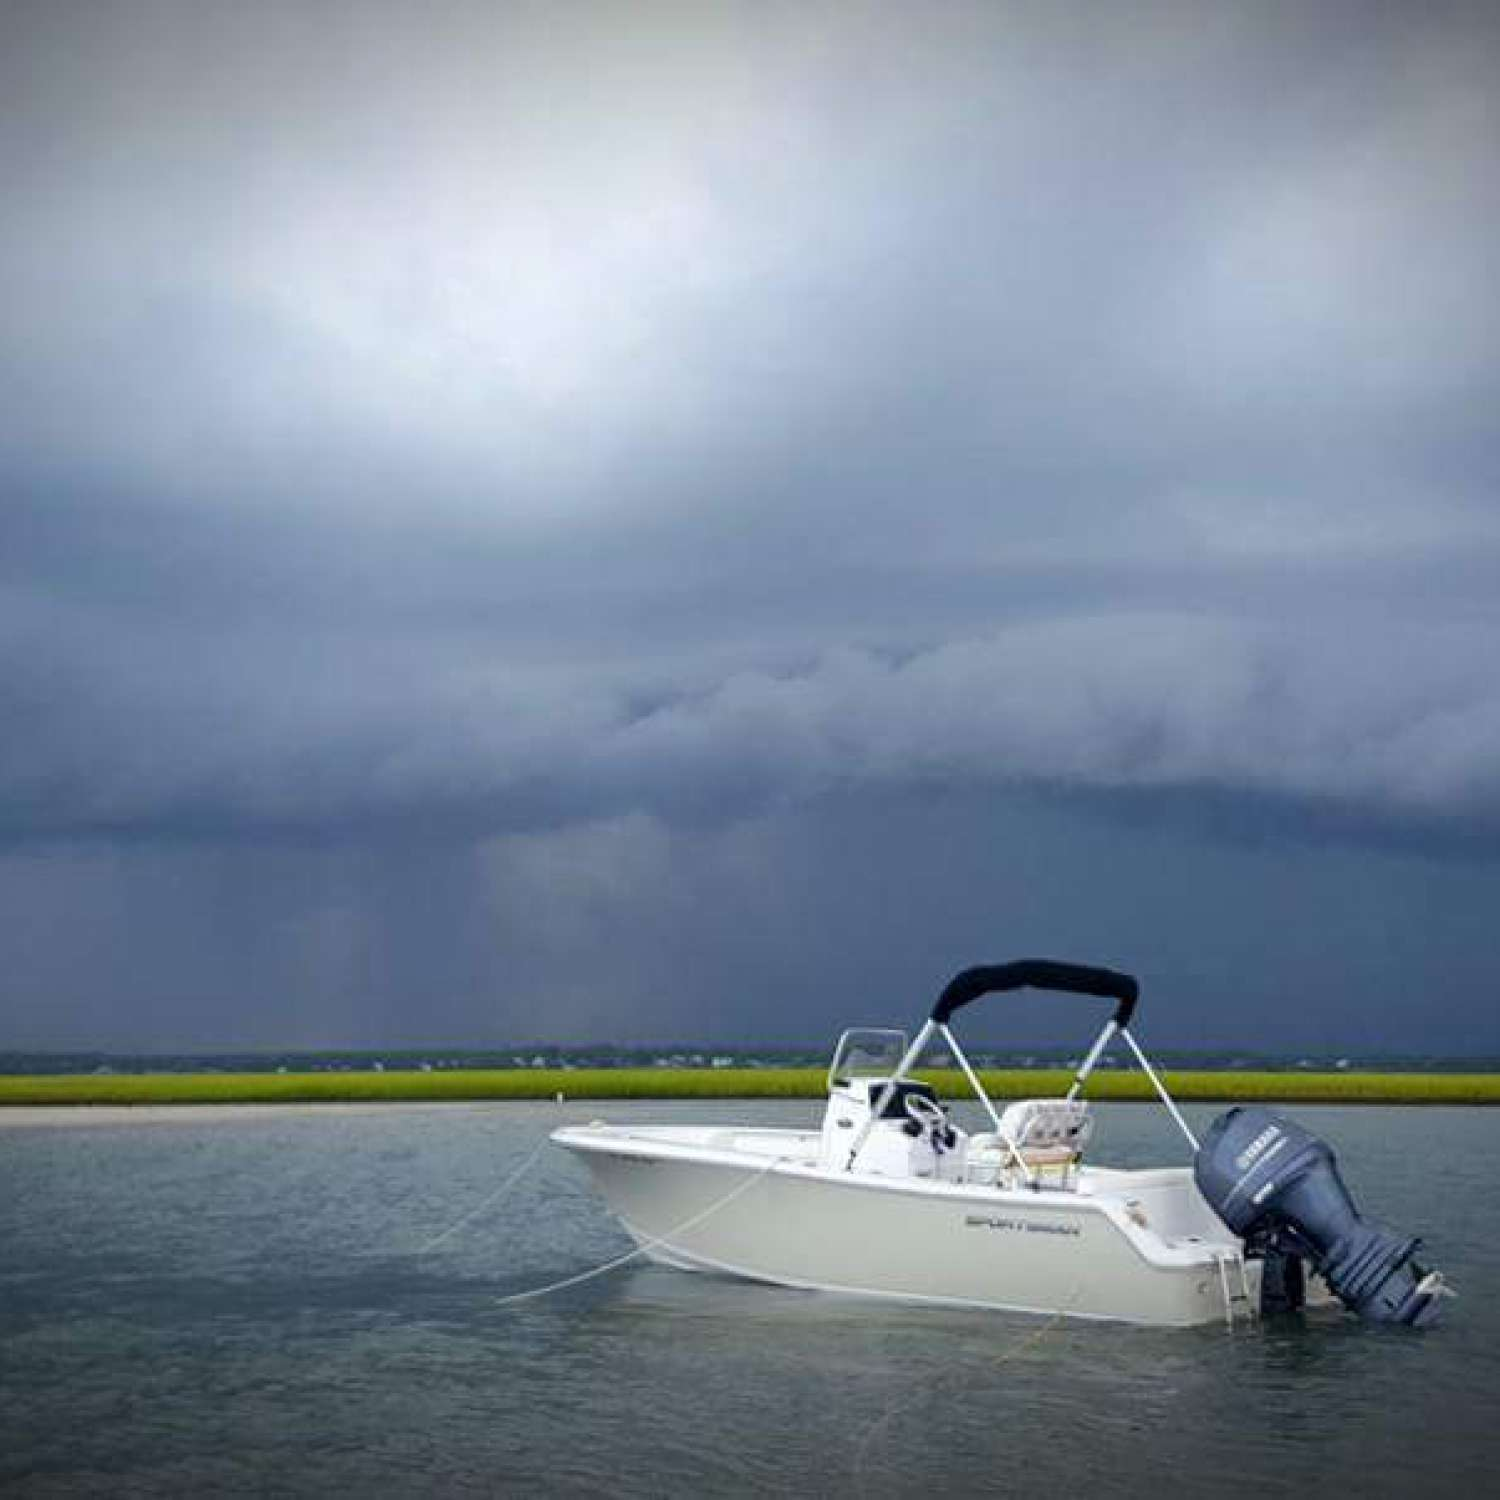 Title: The Calm Before The Storm - On board their Sportsman Heritage 211 Center Console - Location: Hampstead, North Carolina. Participating in the Photo Contest #SportsmanMarch2017